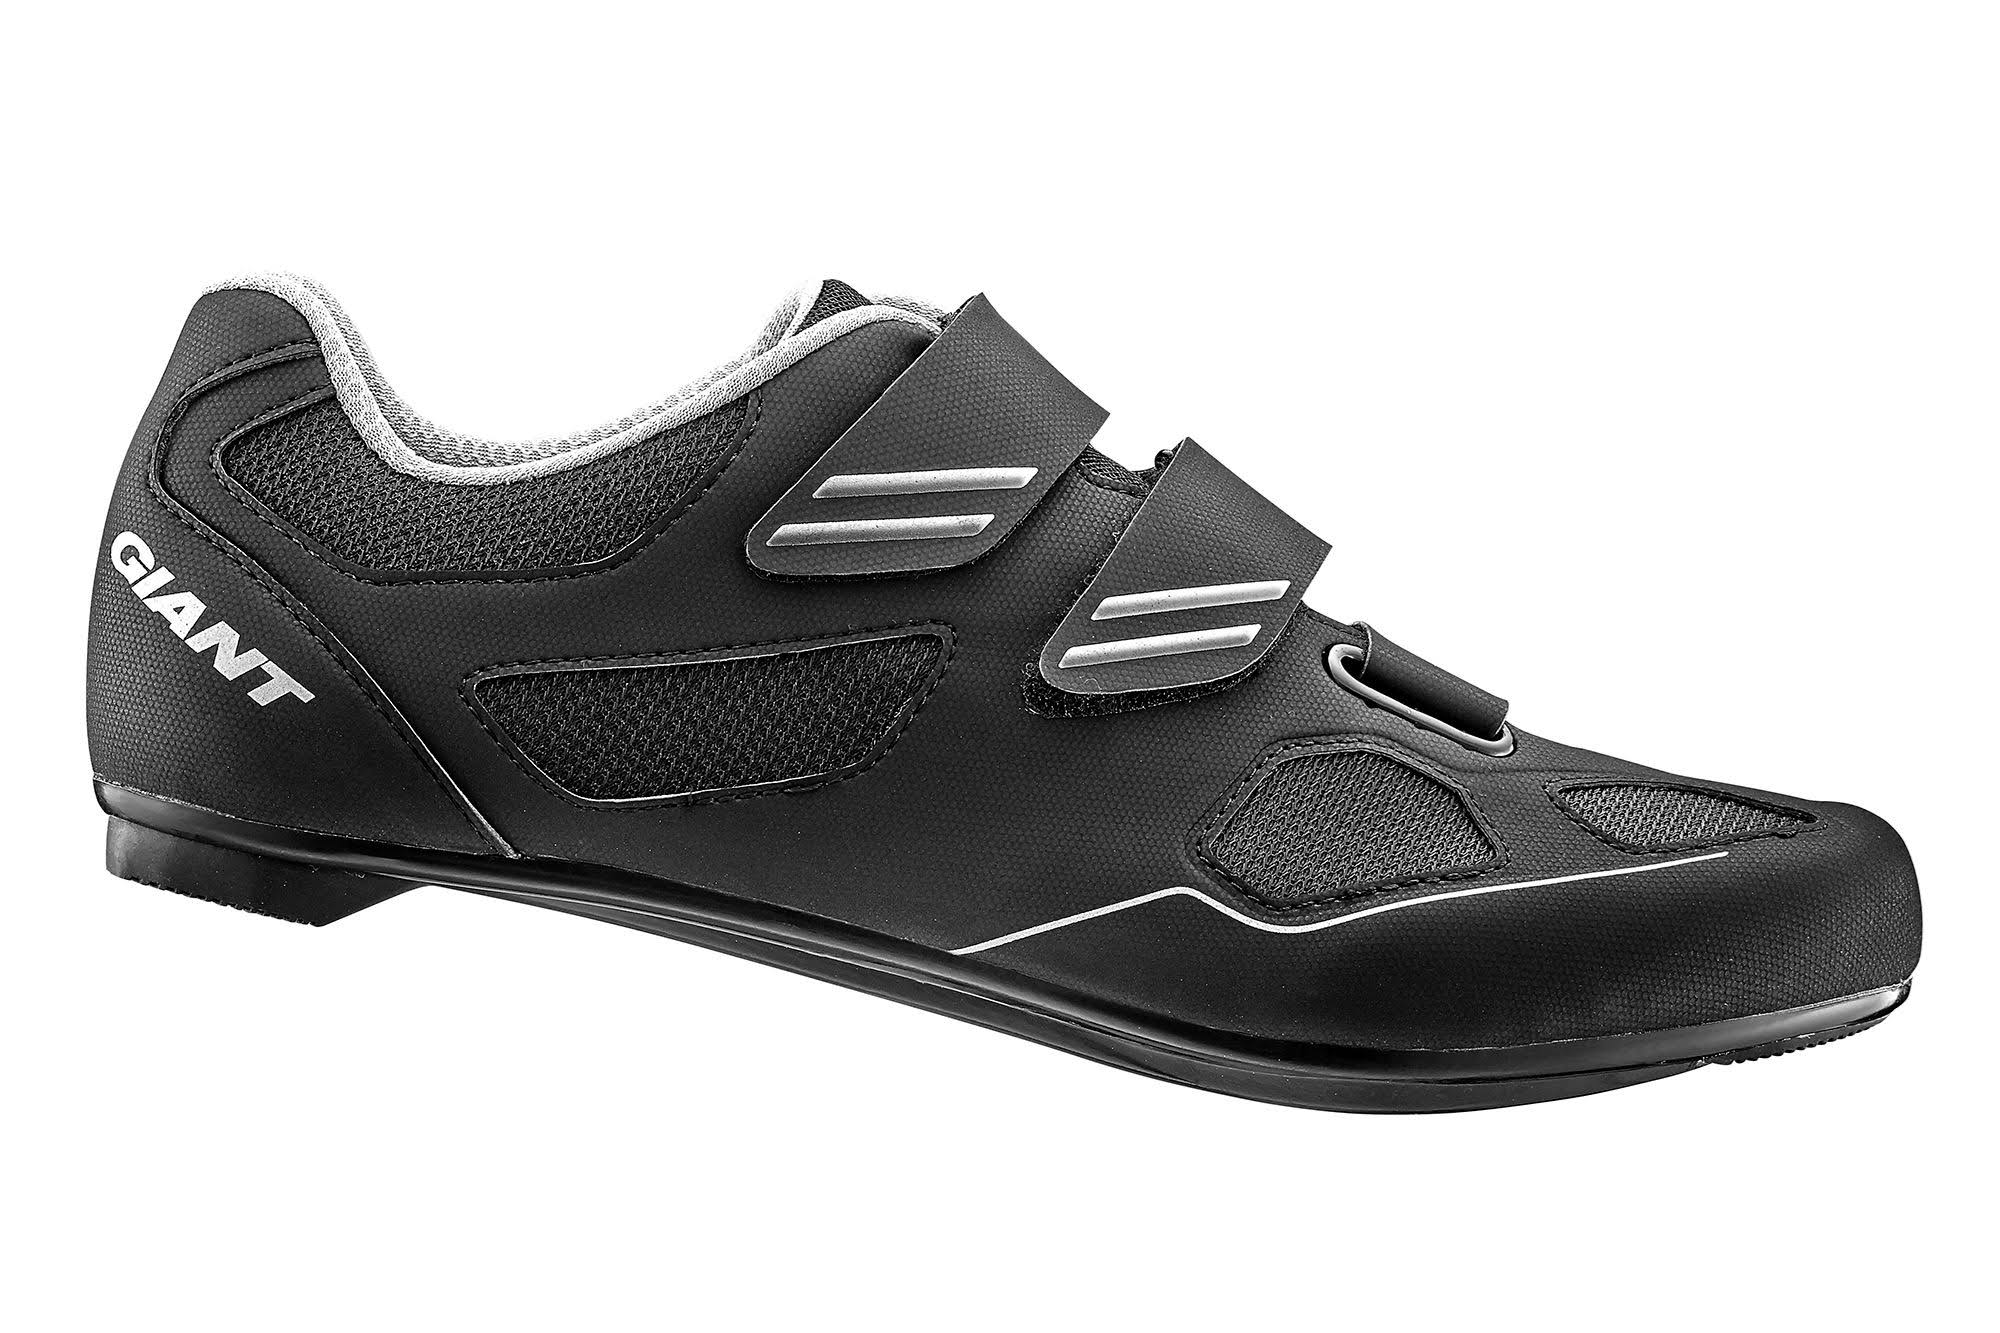 Giant Bolt Road Shoes - Black/Silver